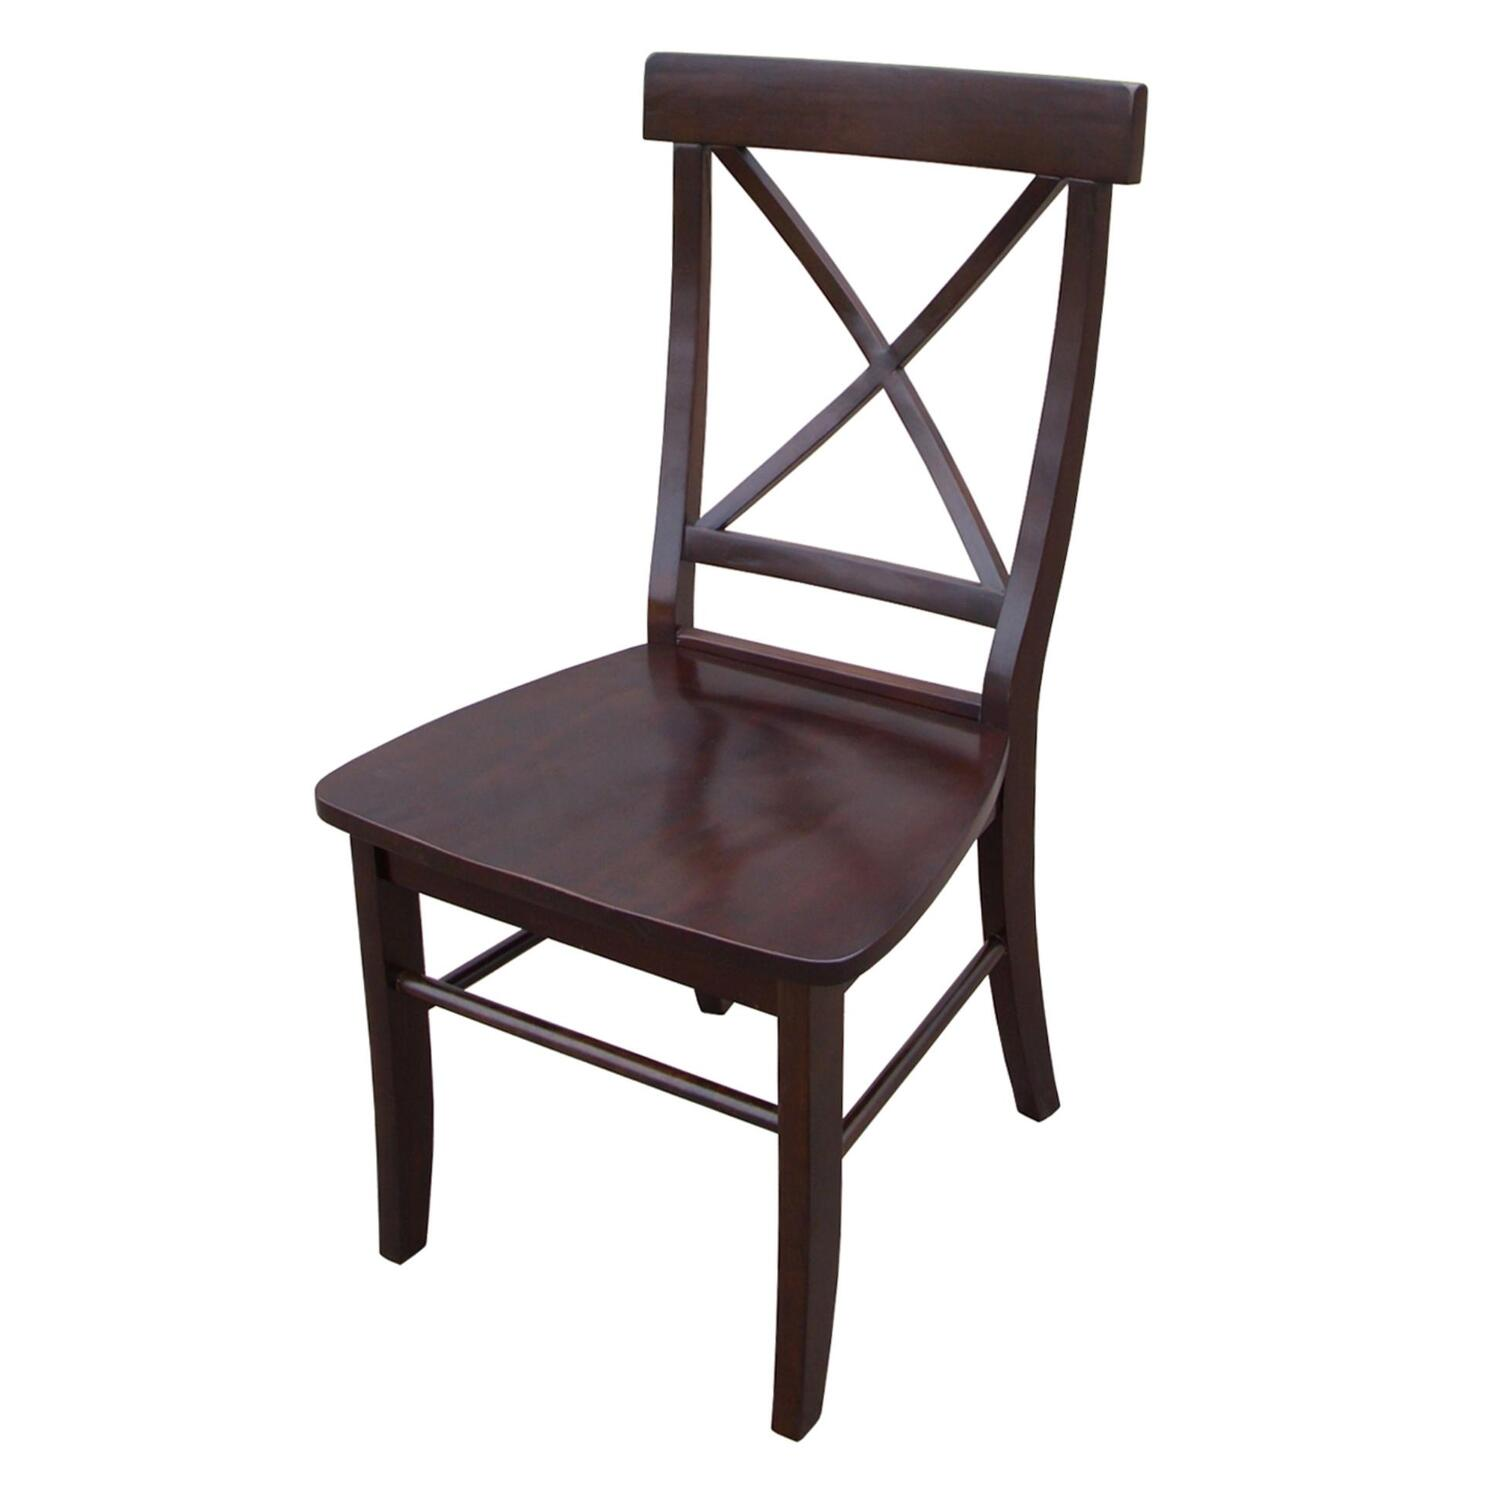 International Concepts X Back Chair With Solid Wood Seat